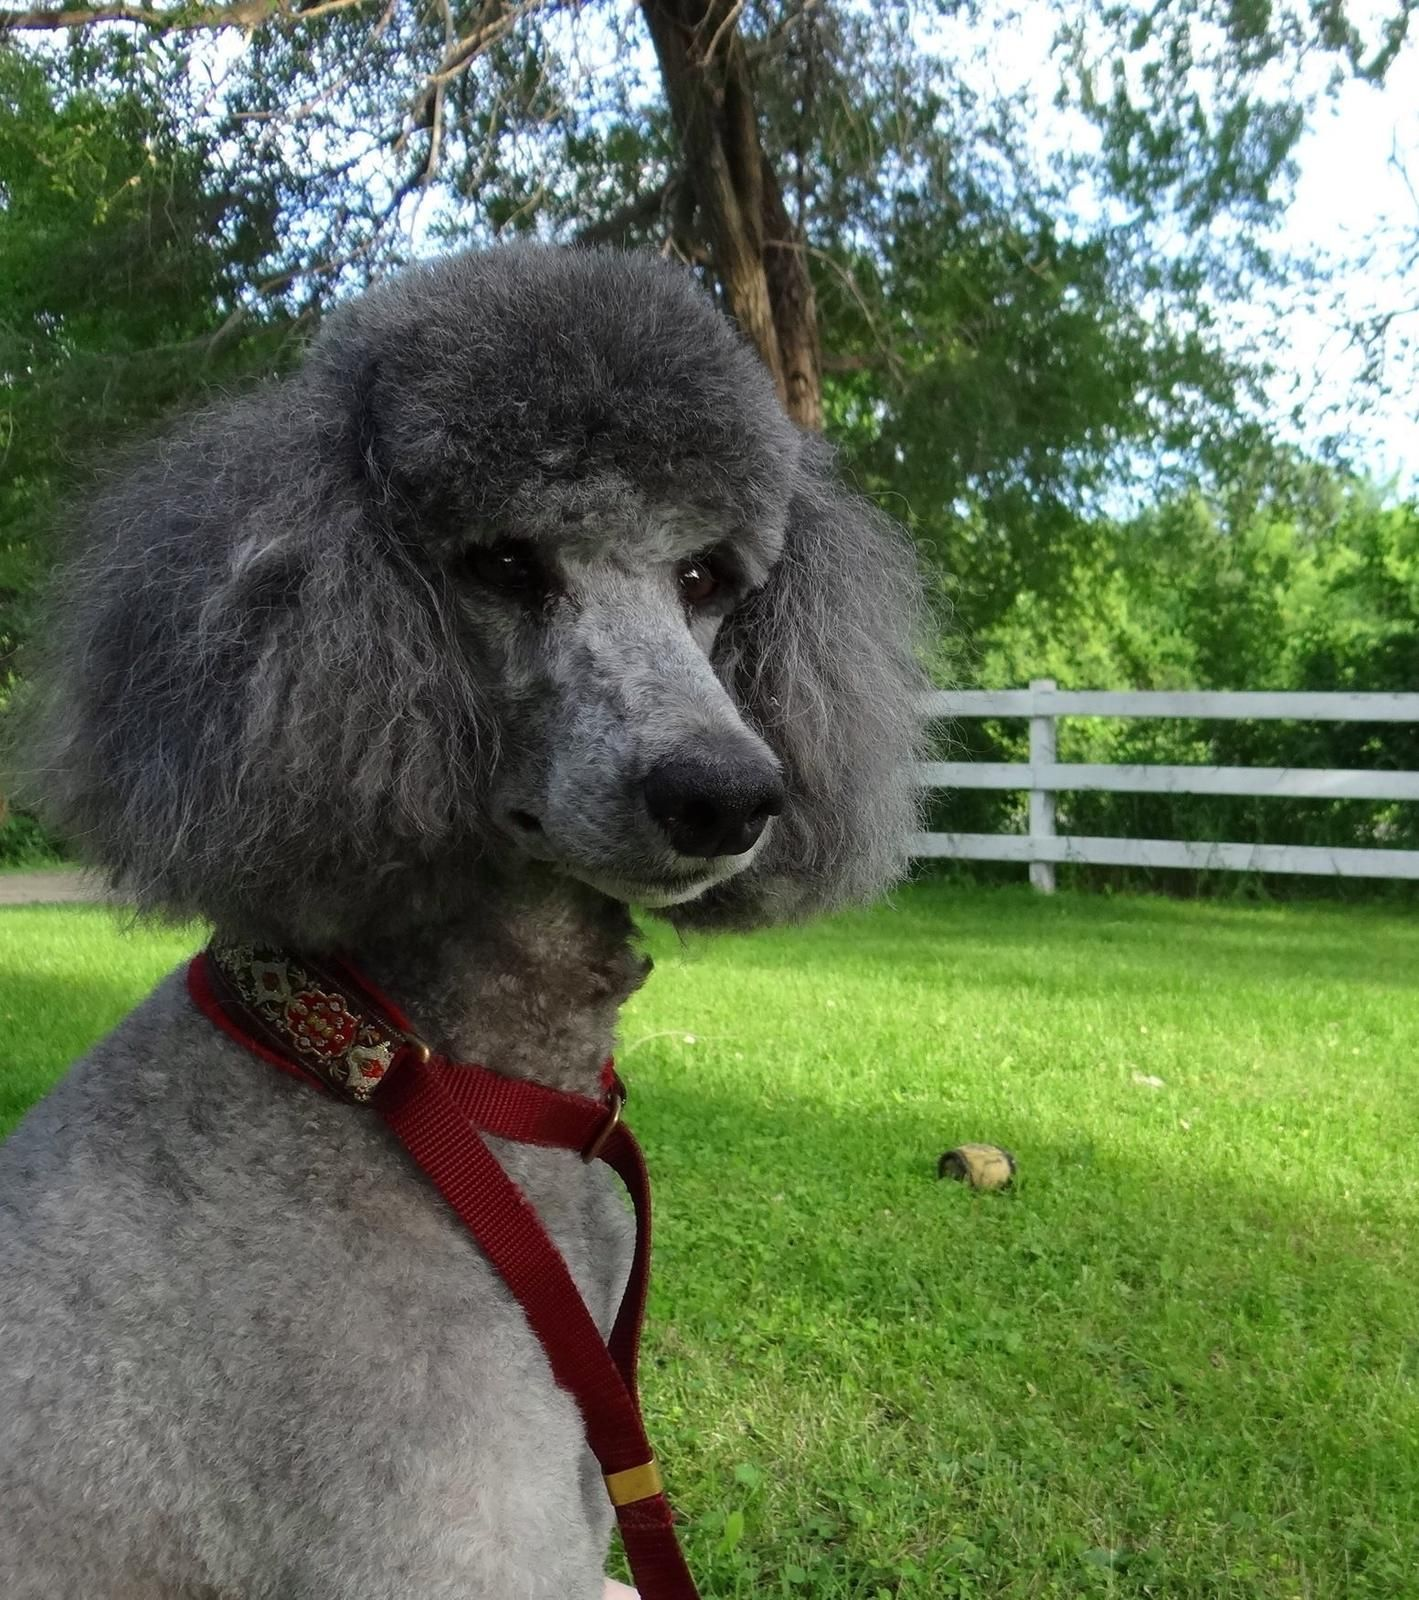 <!-- keywords: Poodle puppies for sale,HUNTING POODLES, standard poodles, MN poodles,puppies minnesota,show poodles, stud service, blue puppies,  poodles, minnesota poodles, parti poodles, health testing, quality puppy -->  <META NAME=TITLE CONTENT=Spir